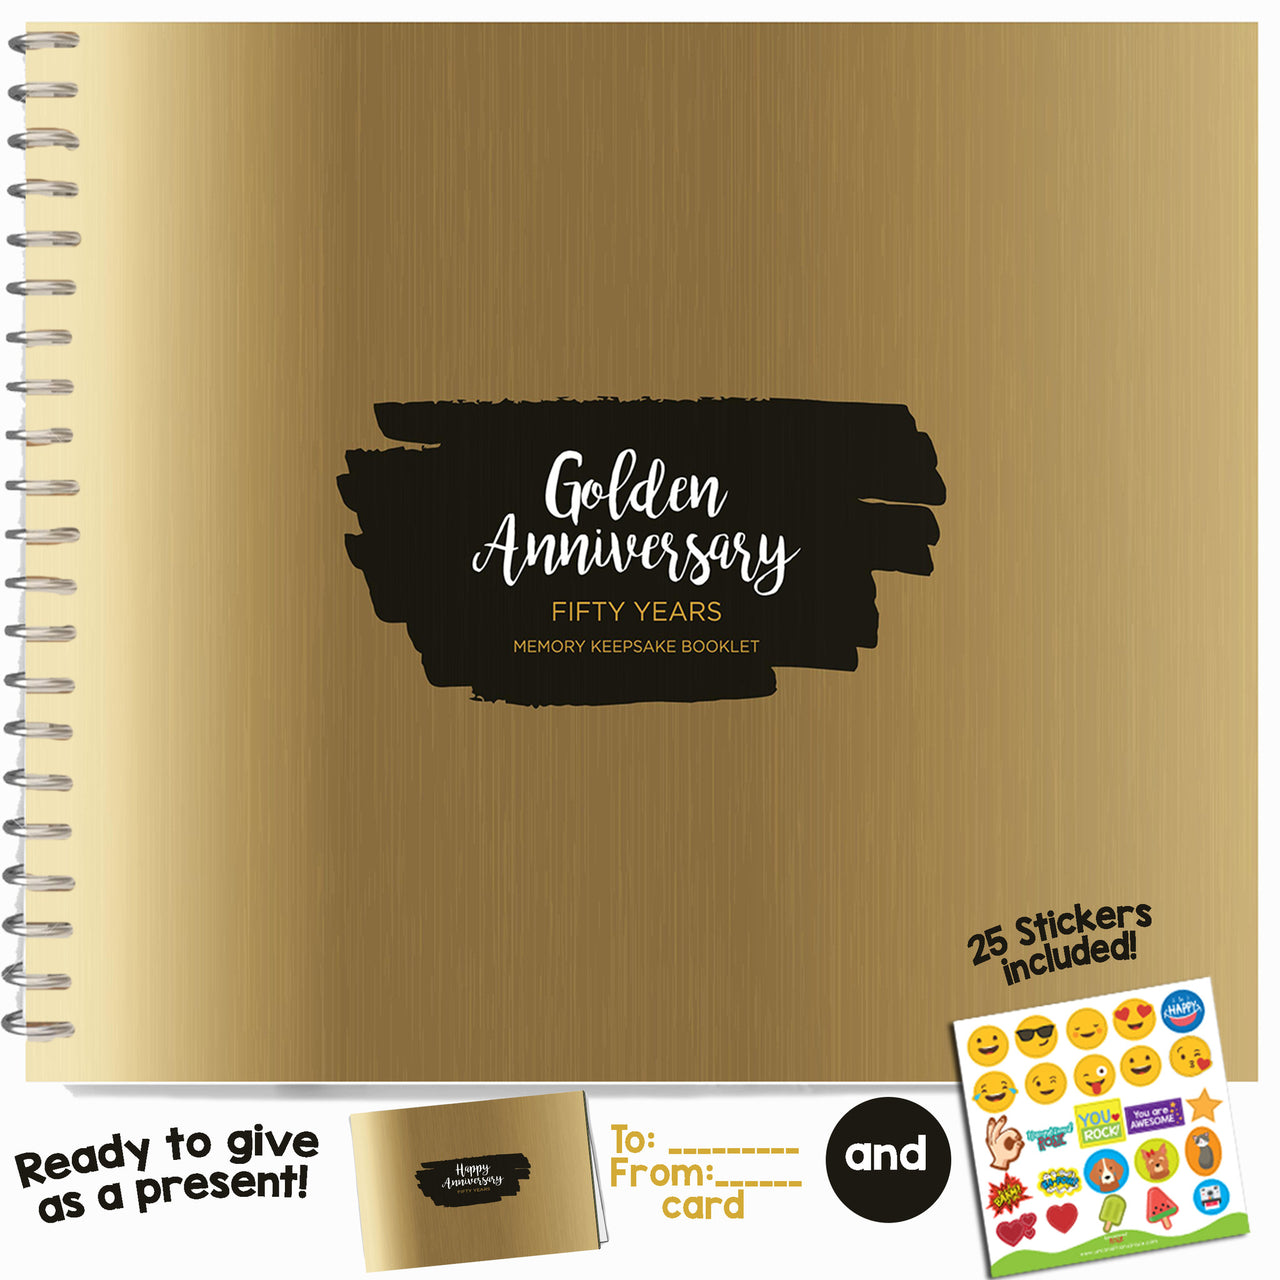 Fifty Year Booklet with Matching Card for Golden Anniversary